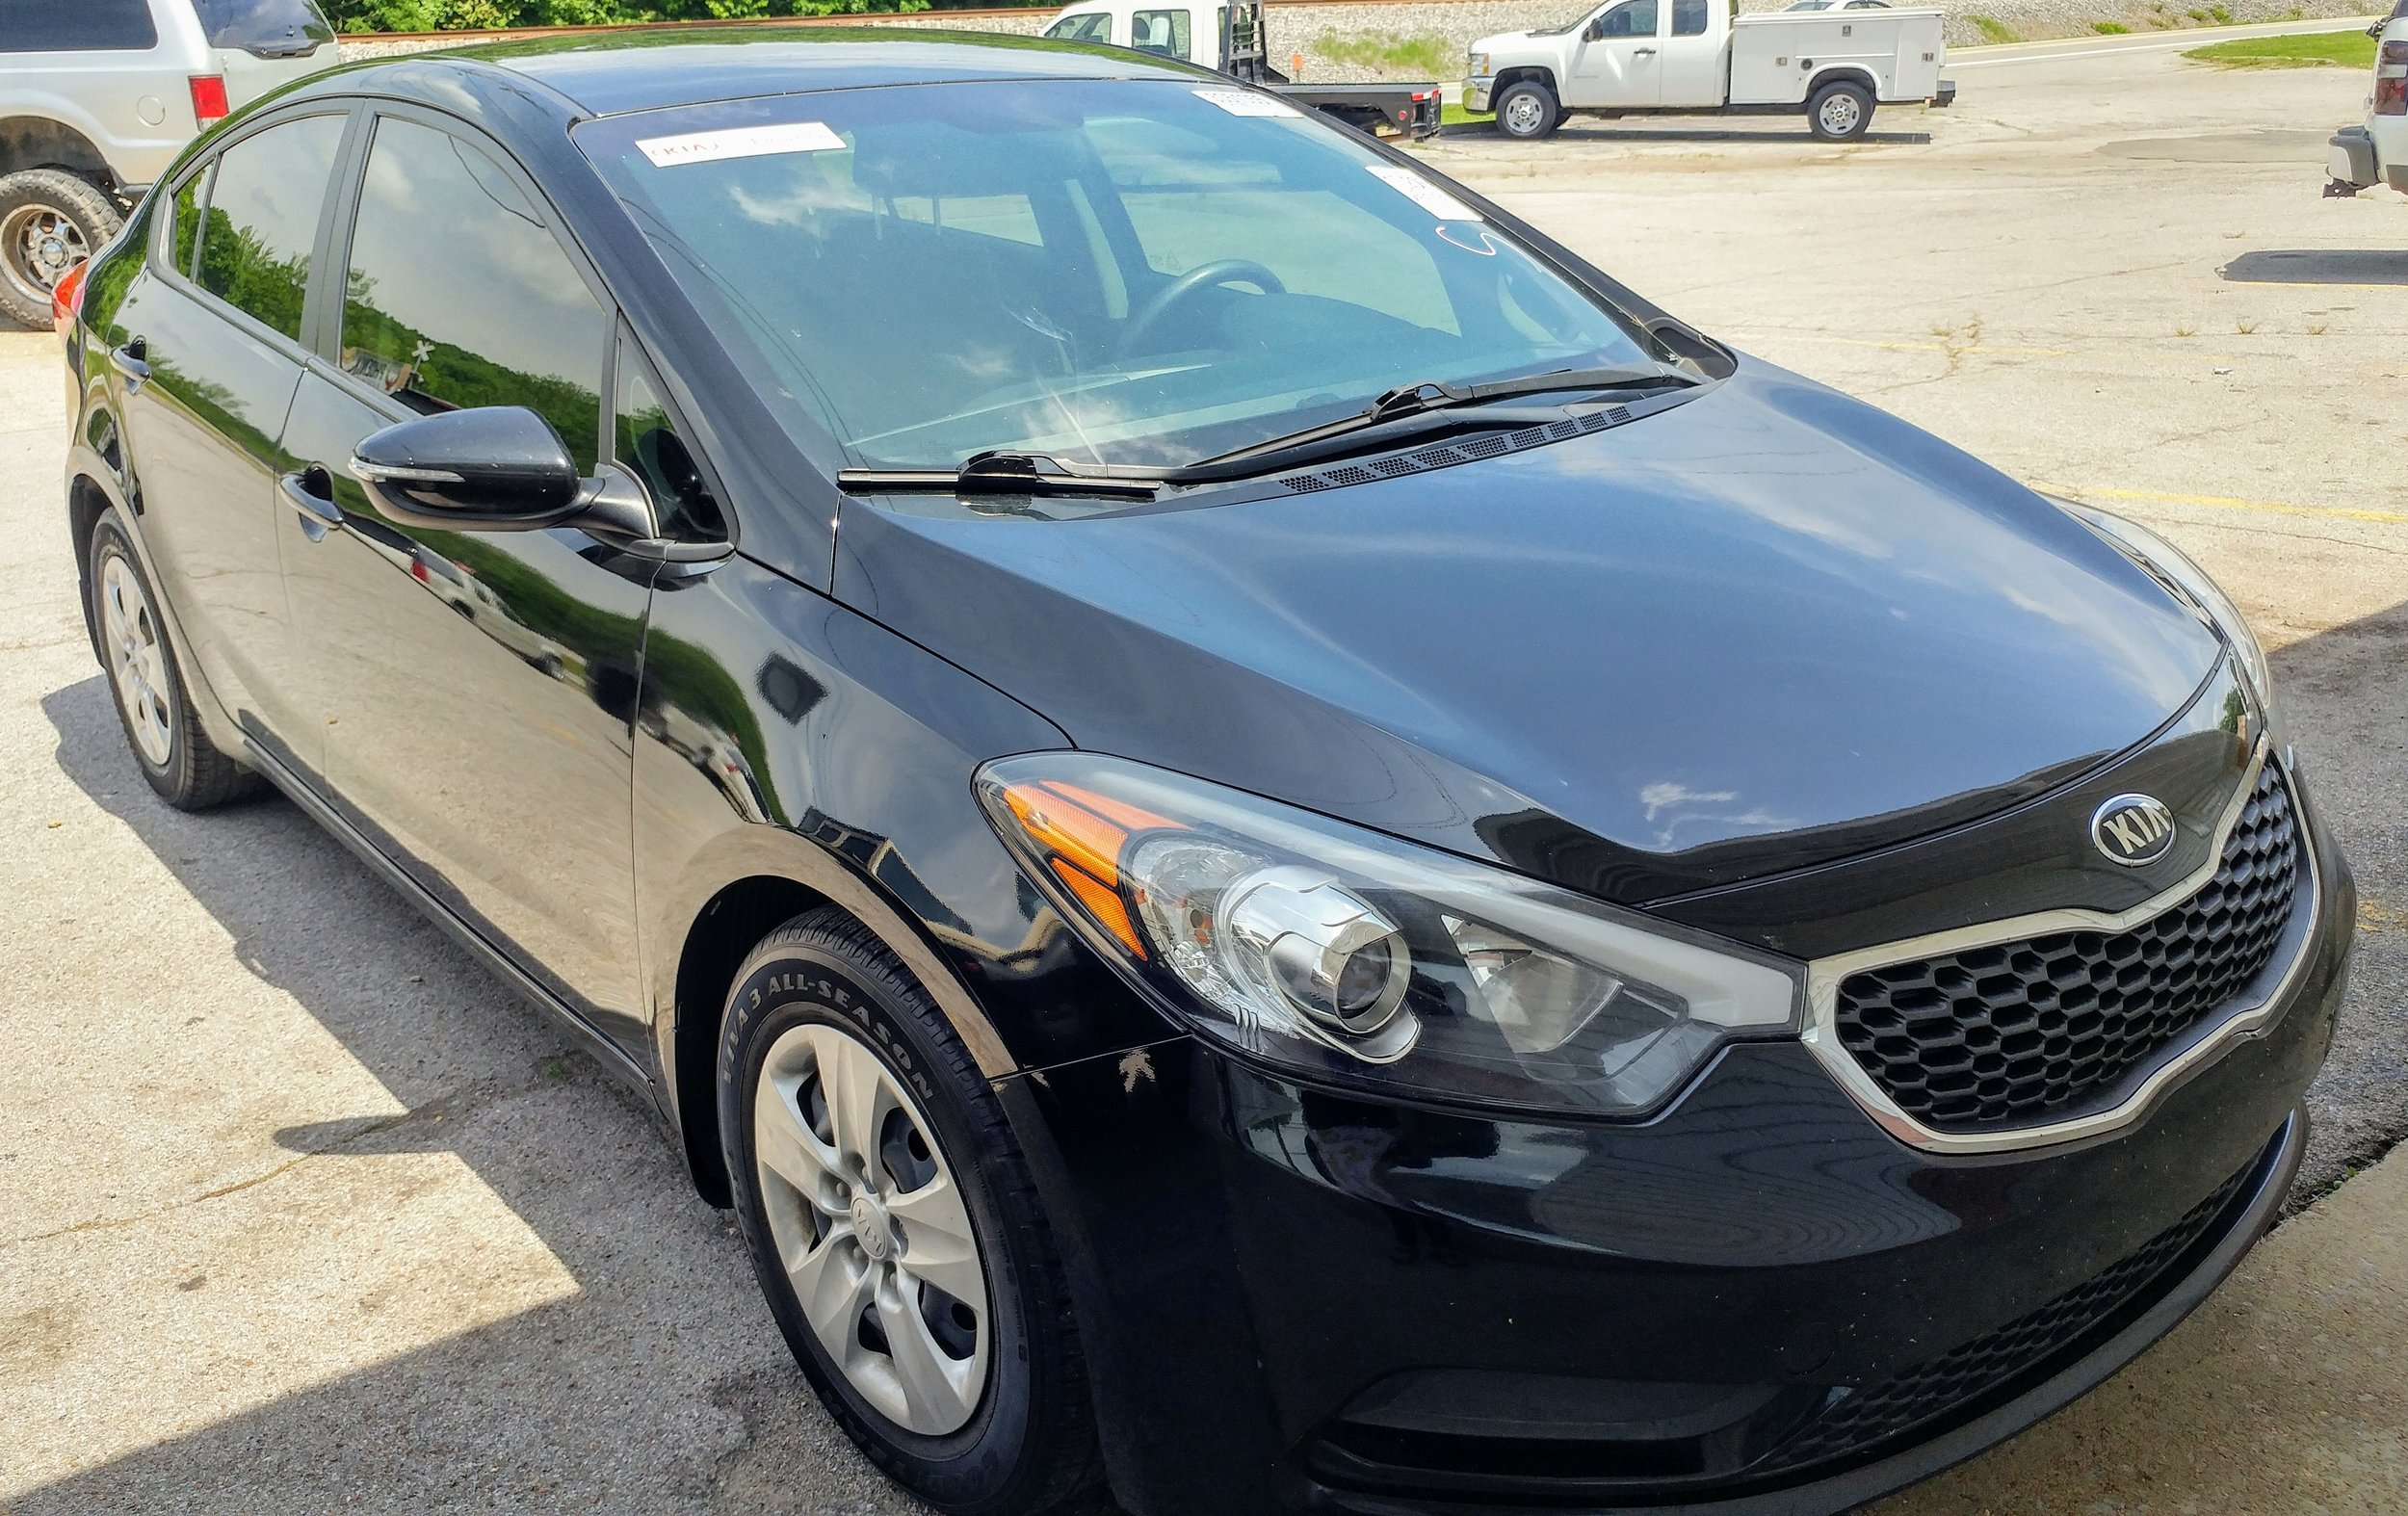 2015 Kia Forte LX - 62,747 miles - 1.8L FWD - Call for pricing